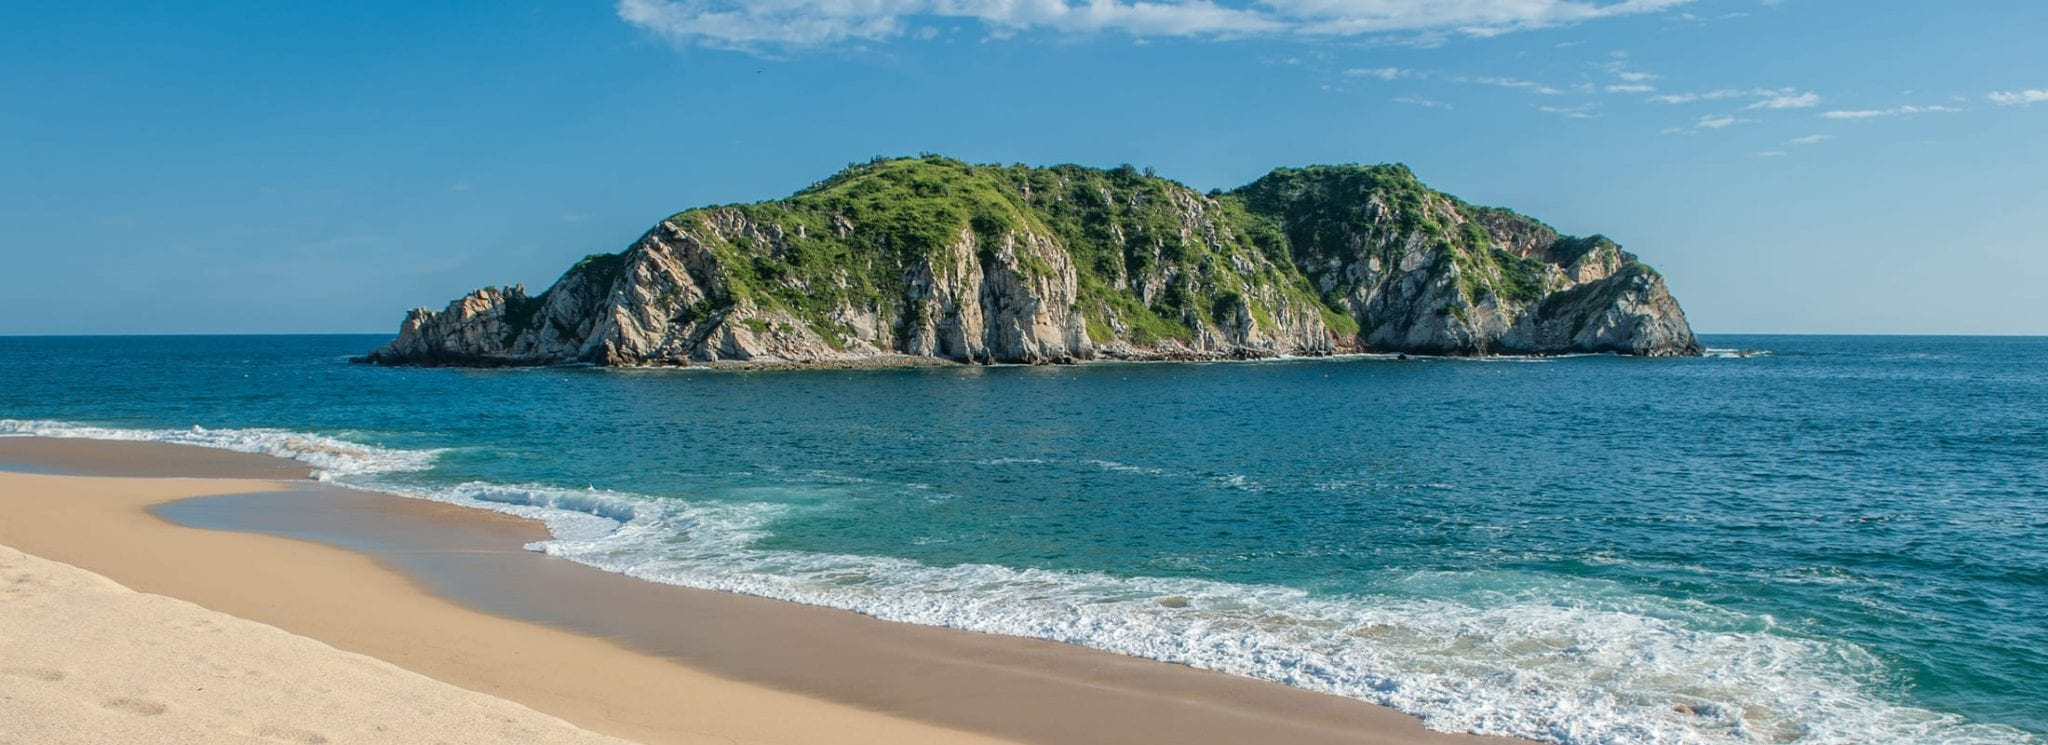 Huatulco Mexico Resorts All Inclusive Vacation Packages